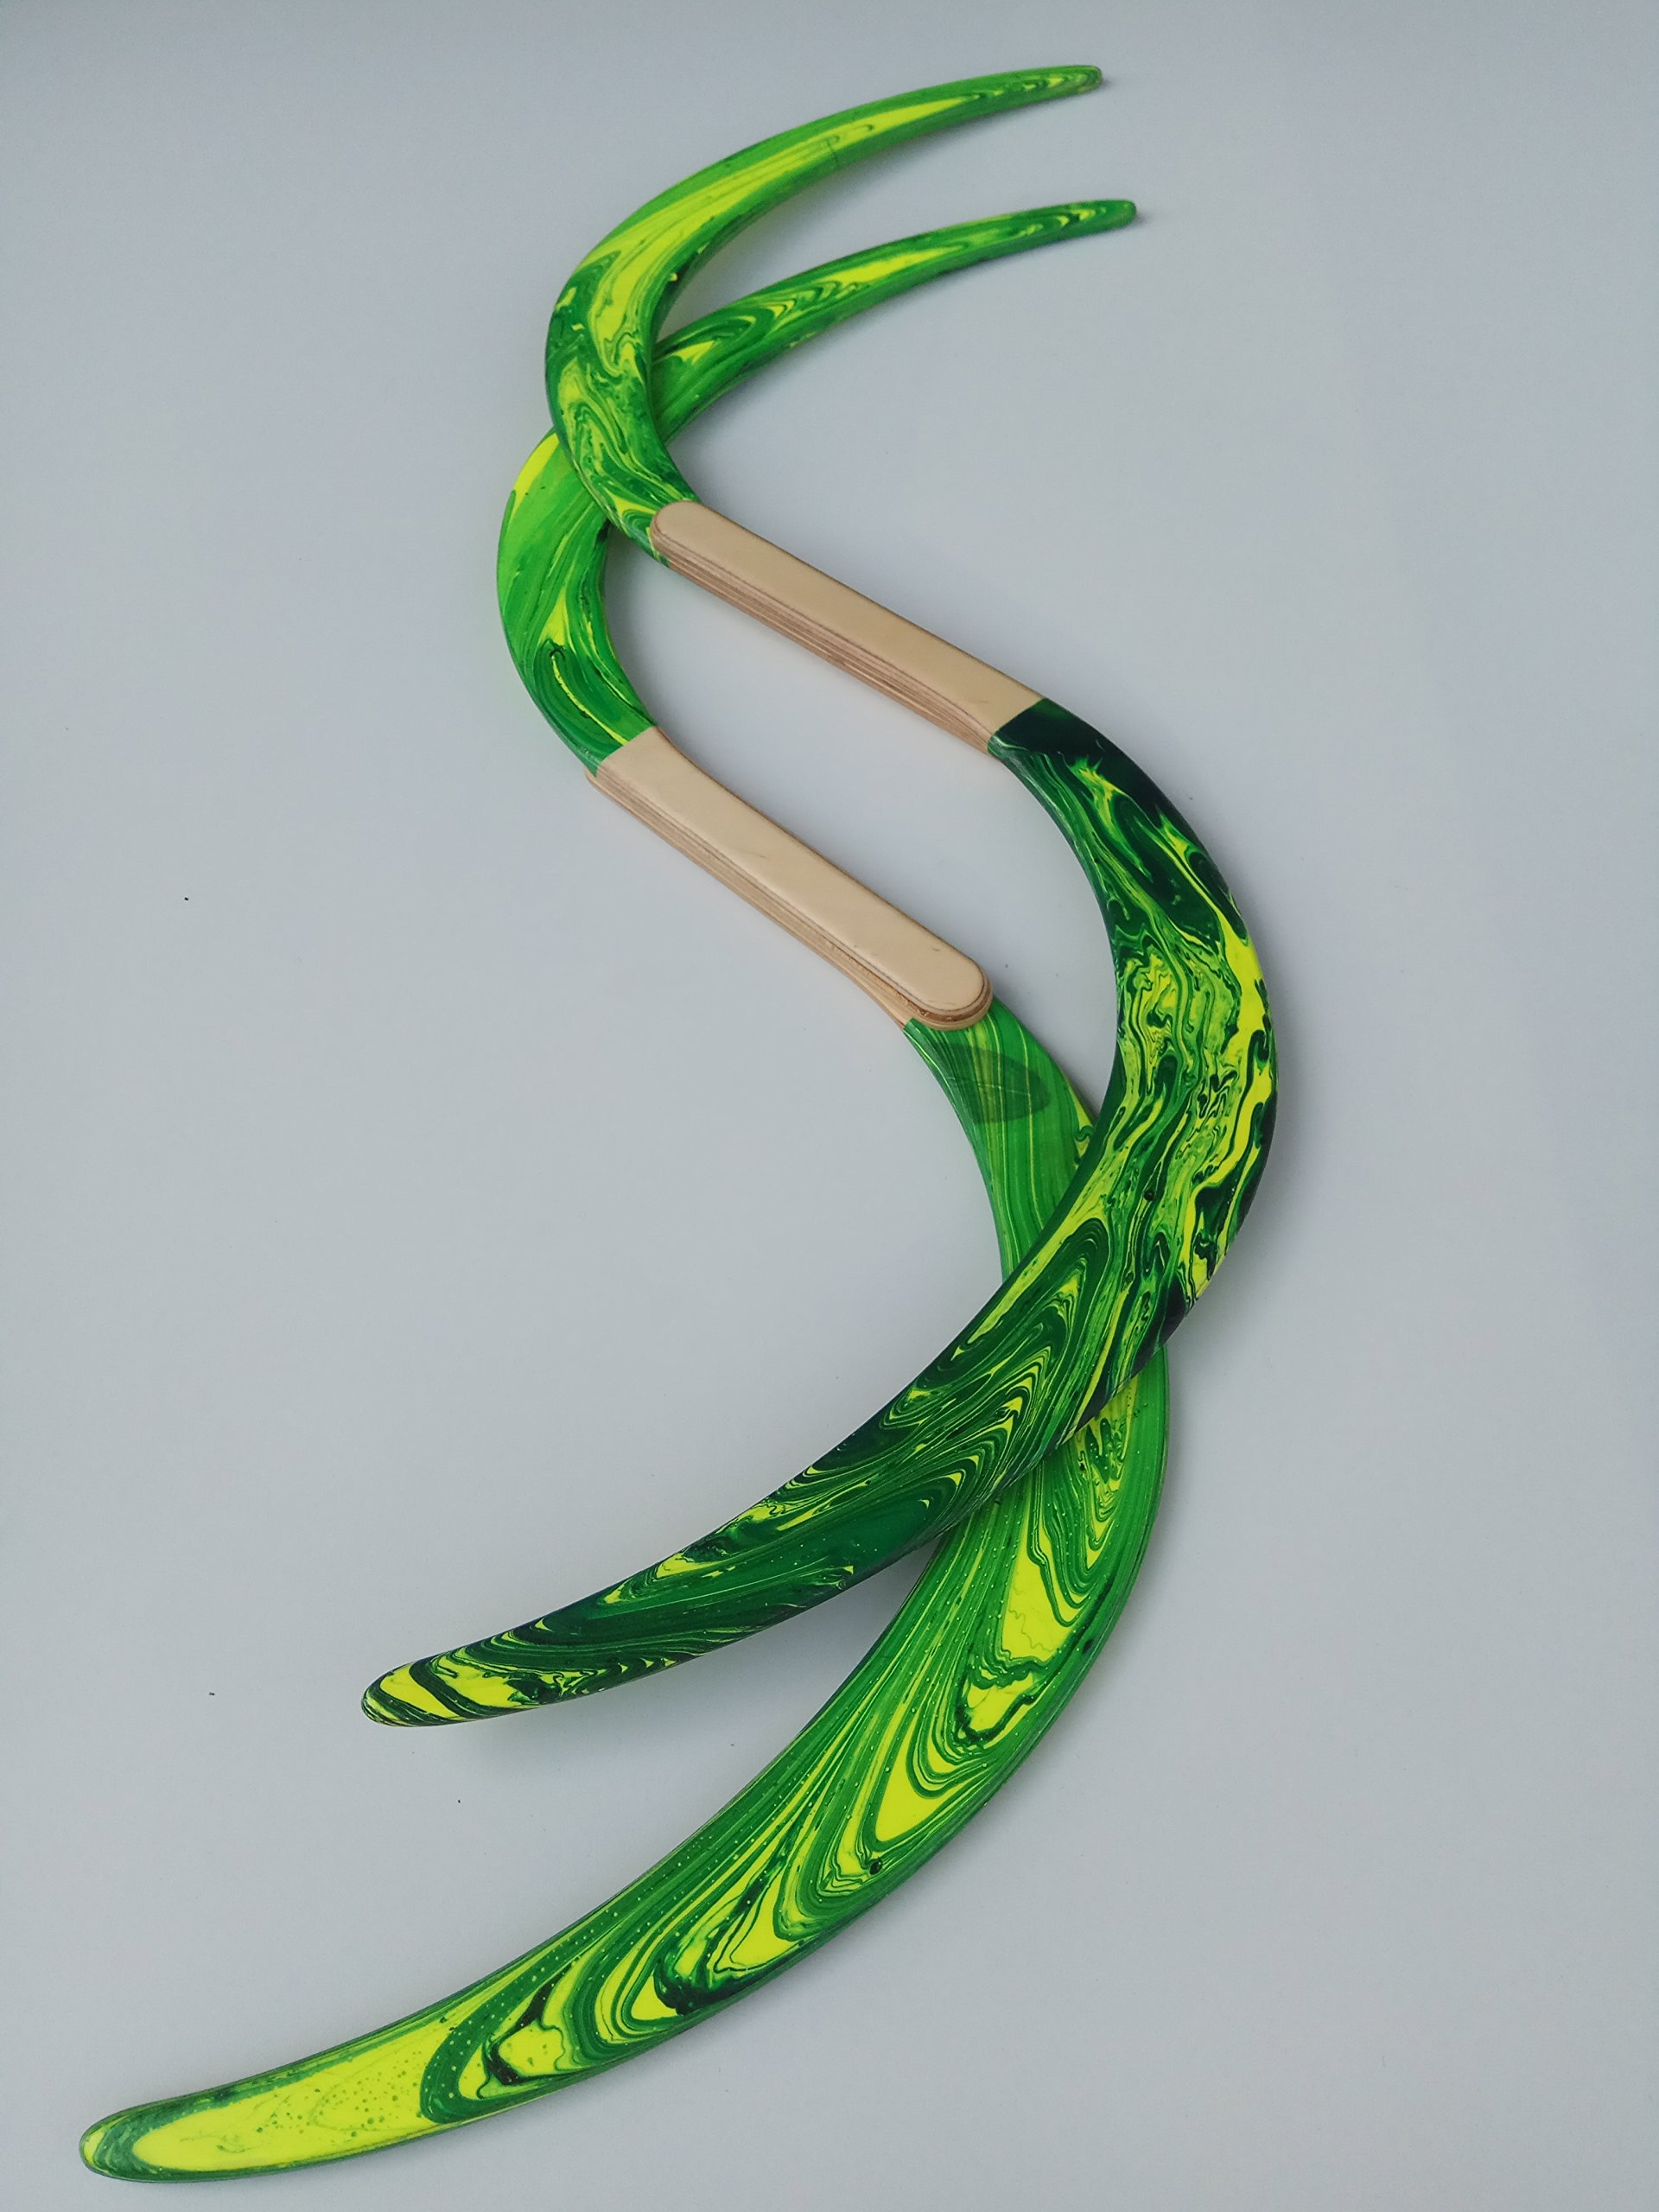 Swirl Buugeng Juggling S Staff S Staves Bugeng Hand Made 2 Pieces Yellow and Green Glows in UV Carry Bag by Buugeng Flow Master J.A.H (Image #4)